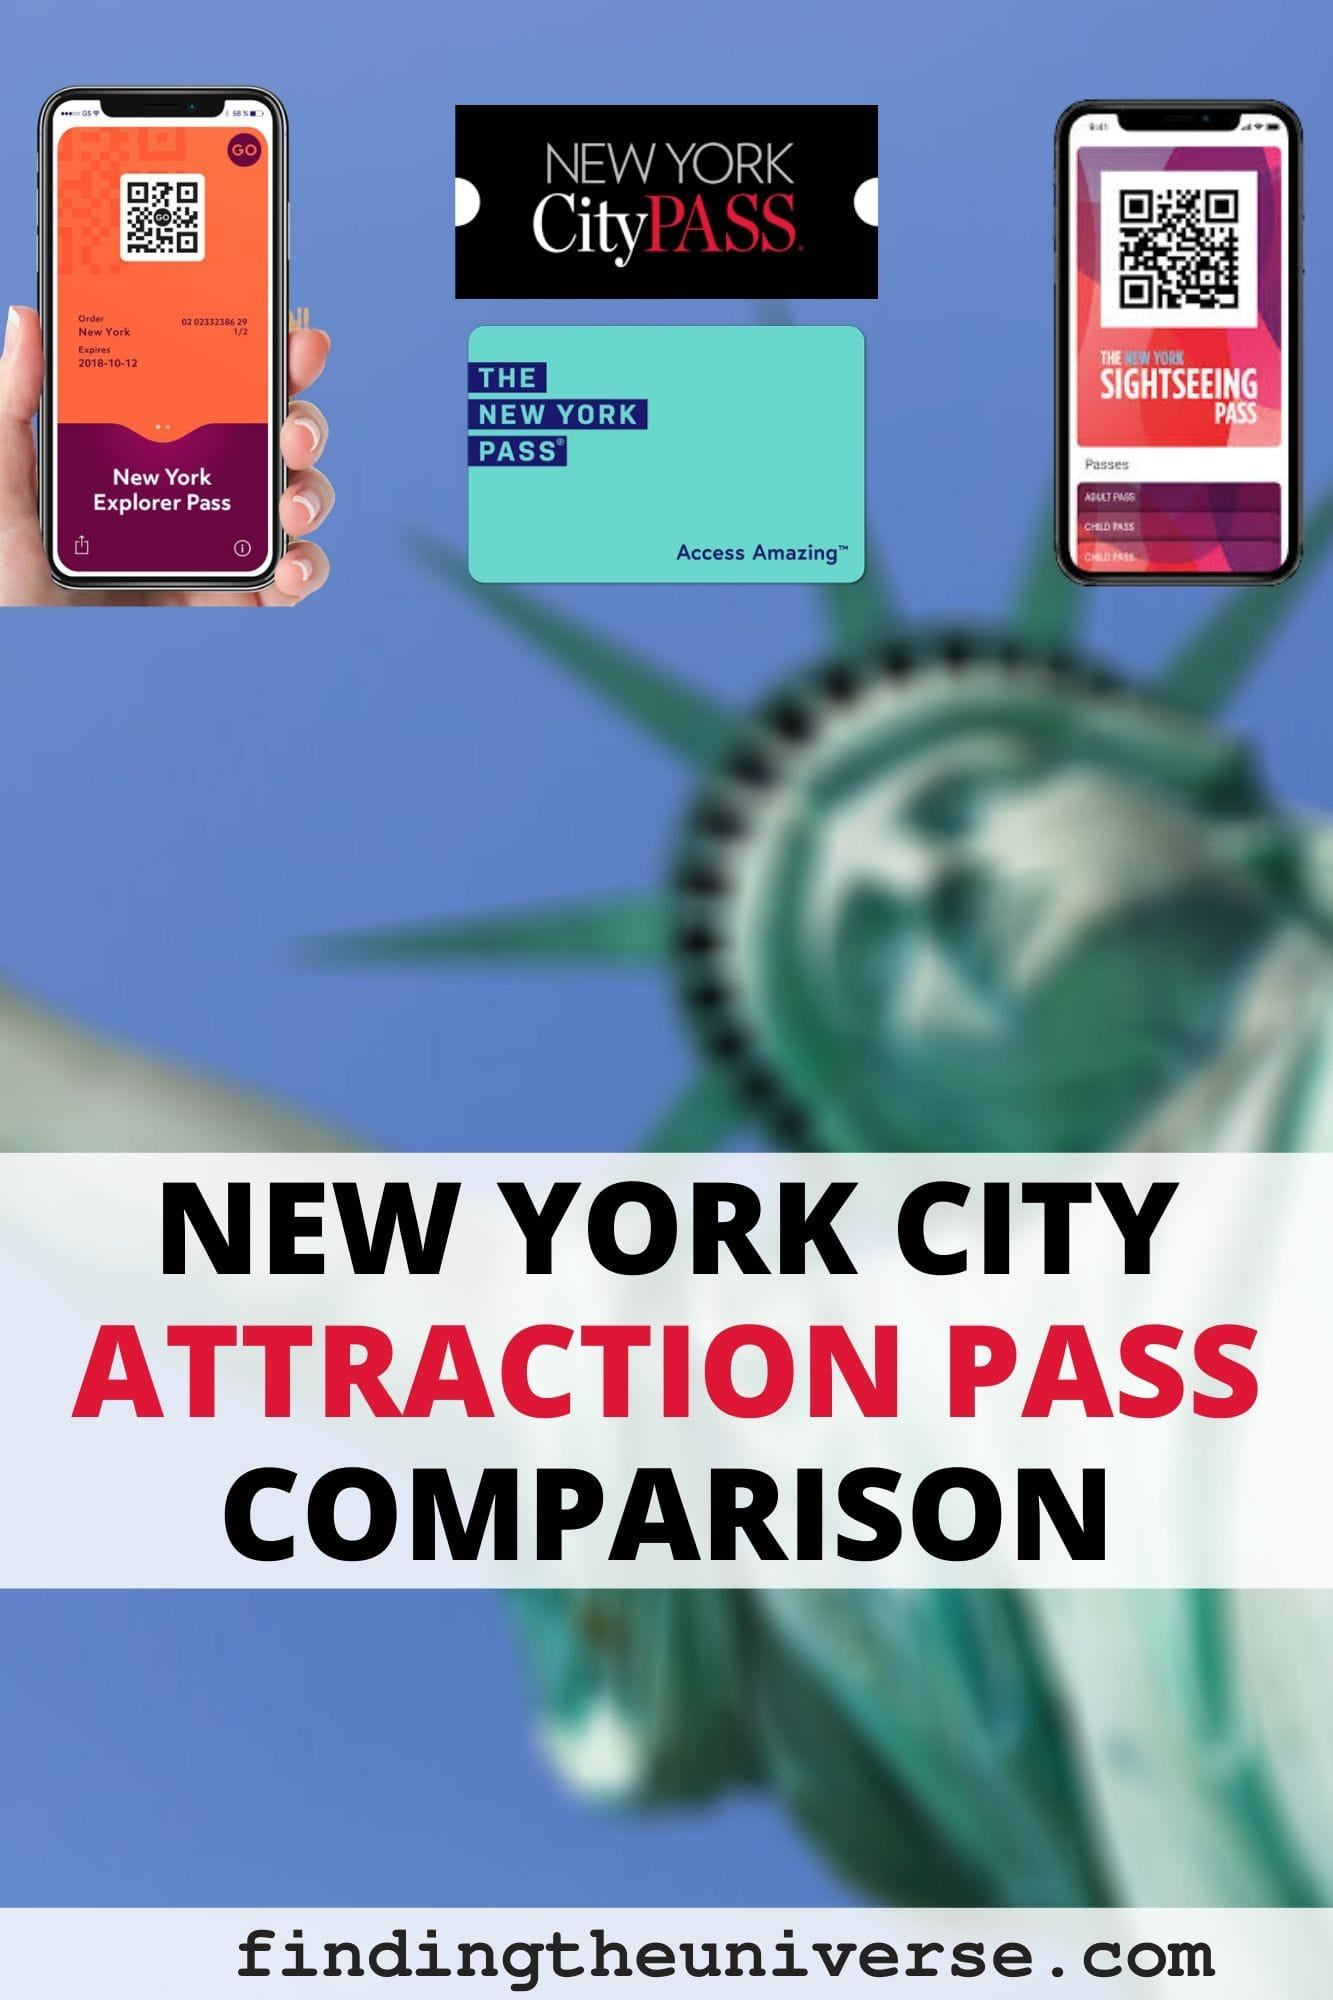 A detailed guide to the best New York City Passes. Details of the available passes, what they offer, and price comparison for a range of itineraries.